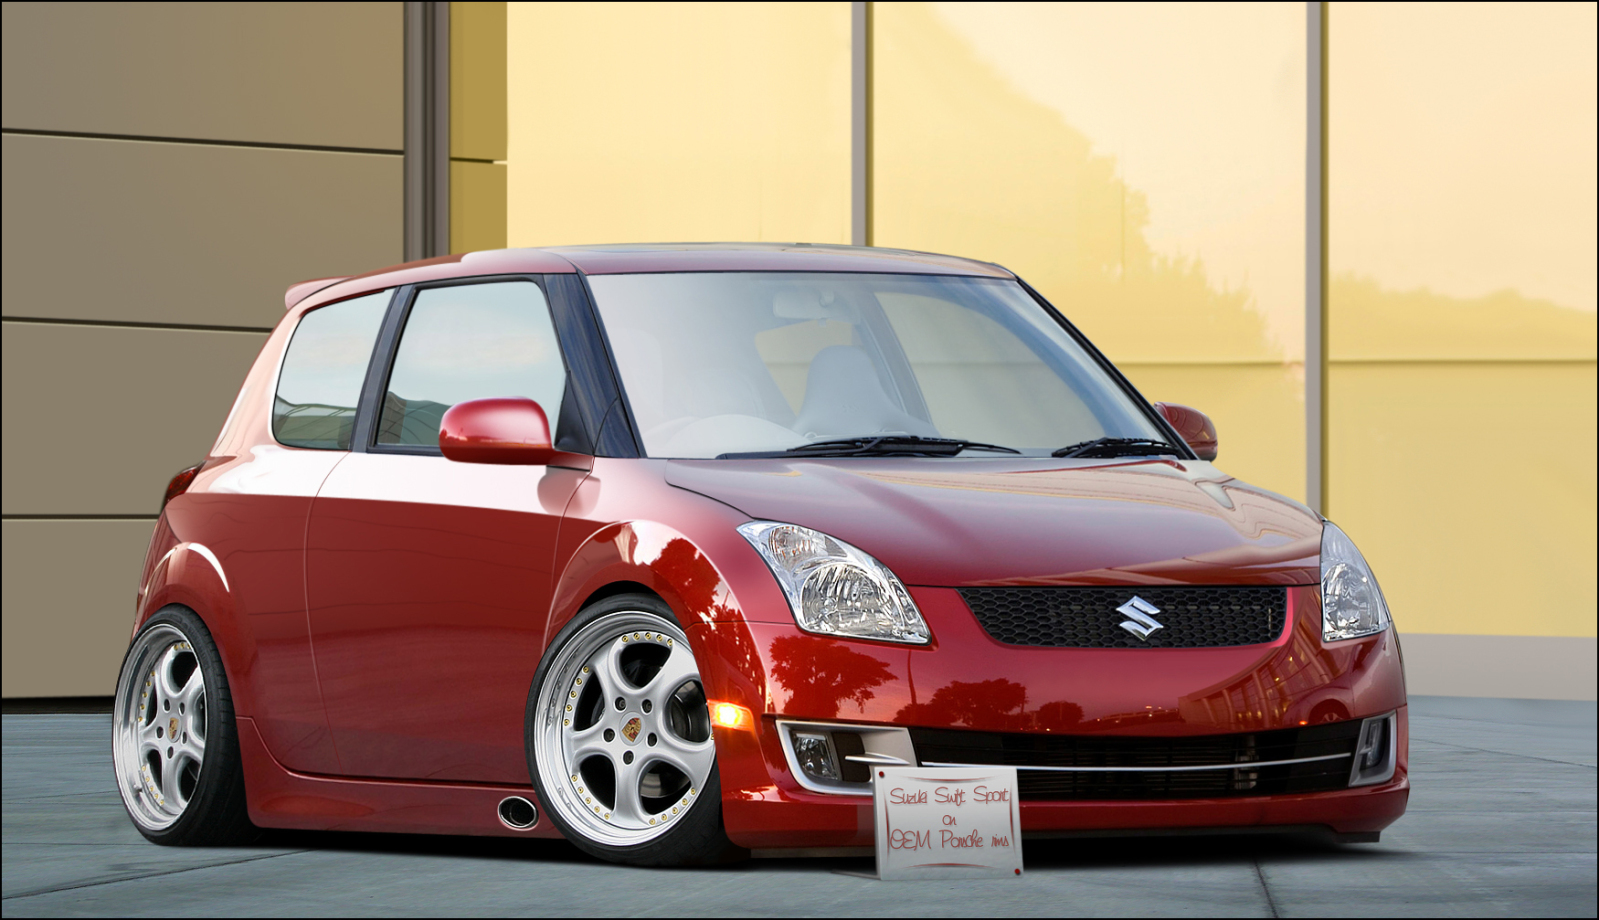 Suzuki Swift Sport Cleanstyle By Leemansj On Deviantart